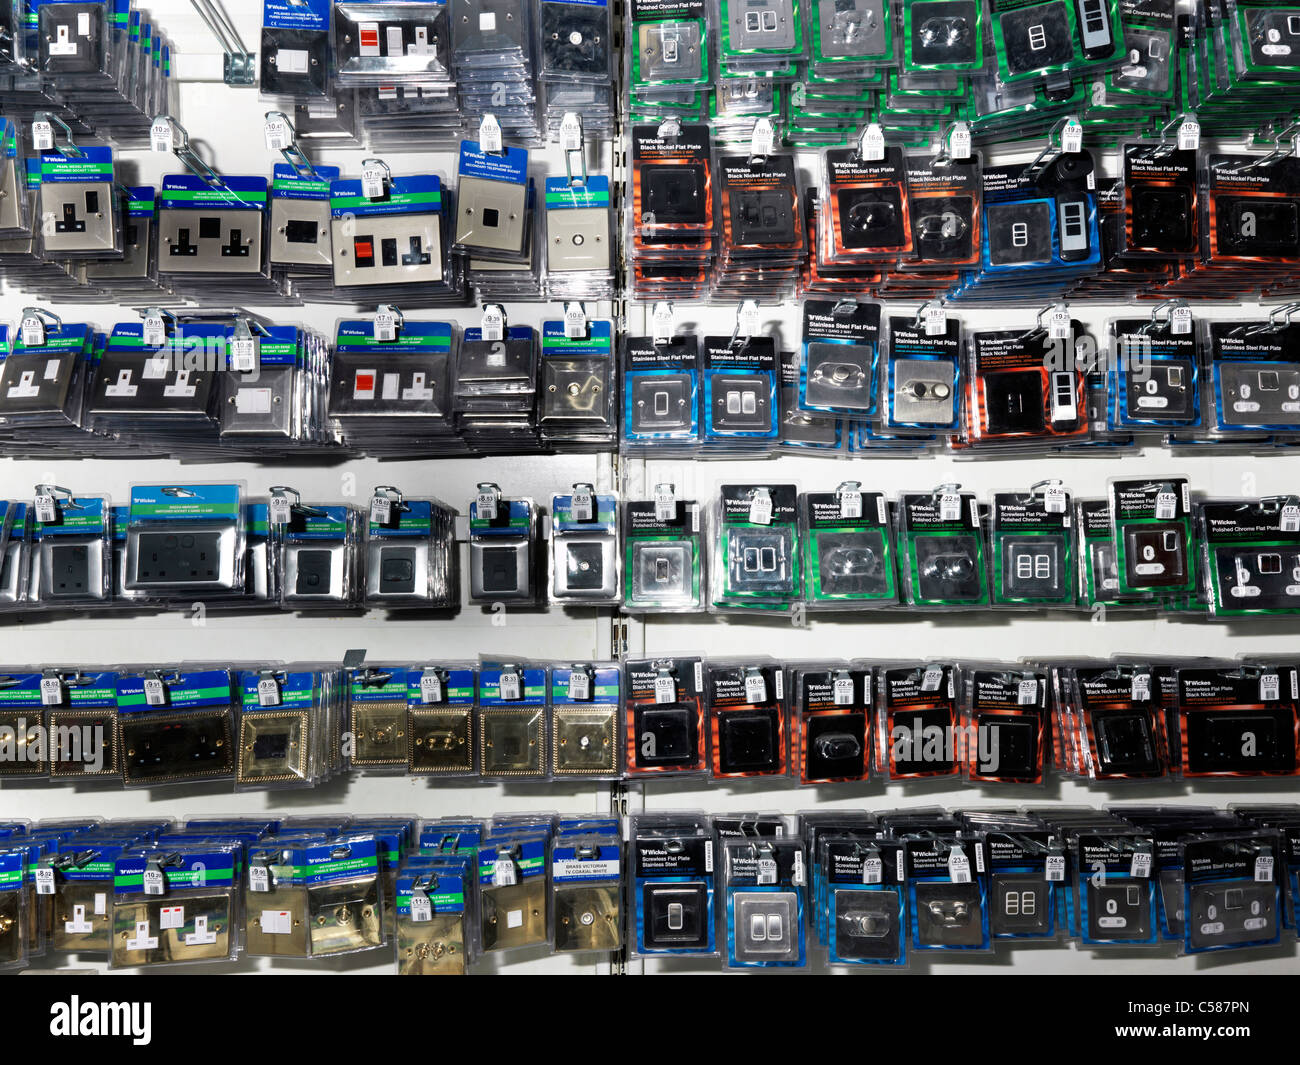 Electrical Fitting On Shelves In D I Y Store Switches And Sockets